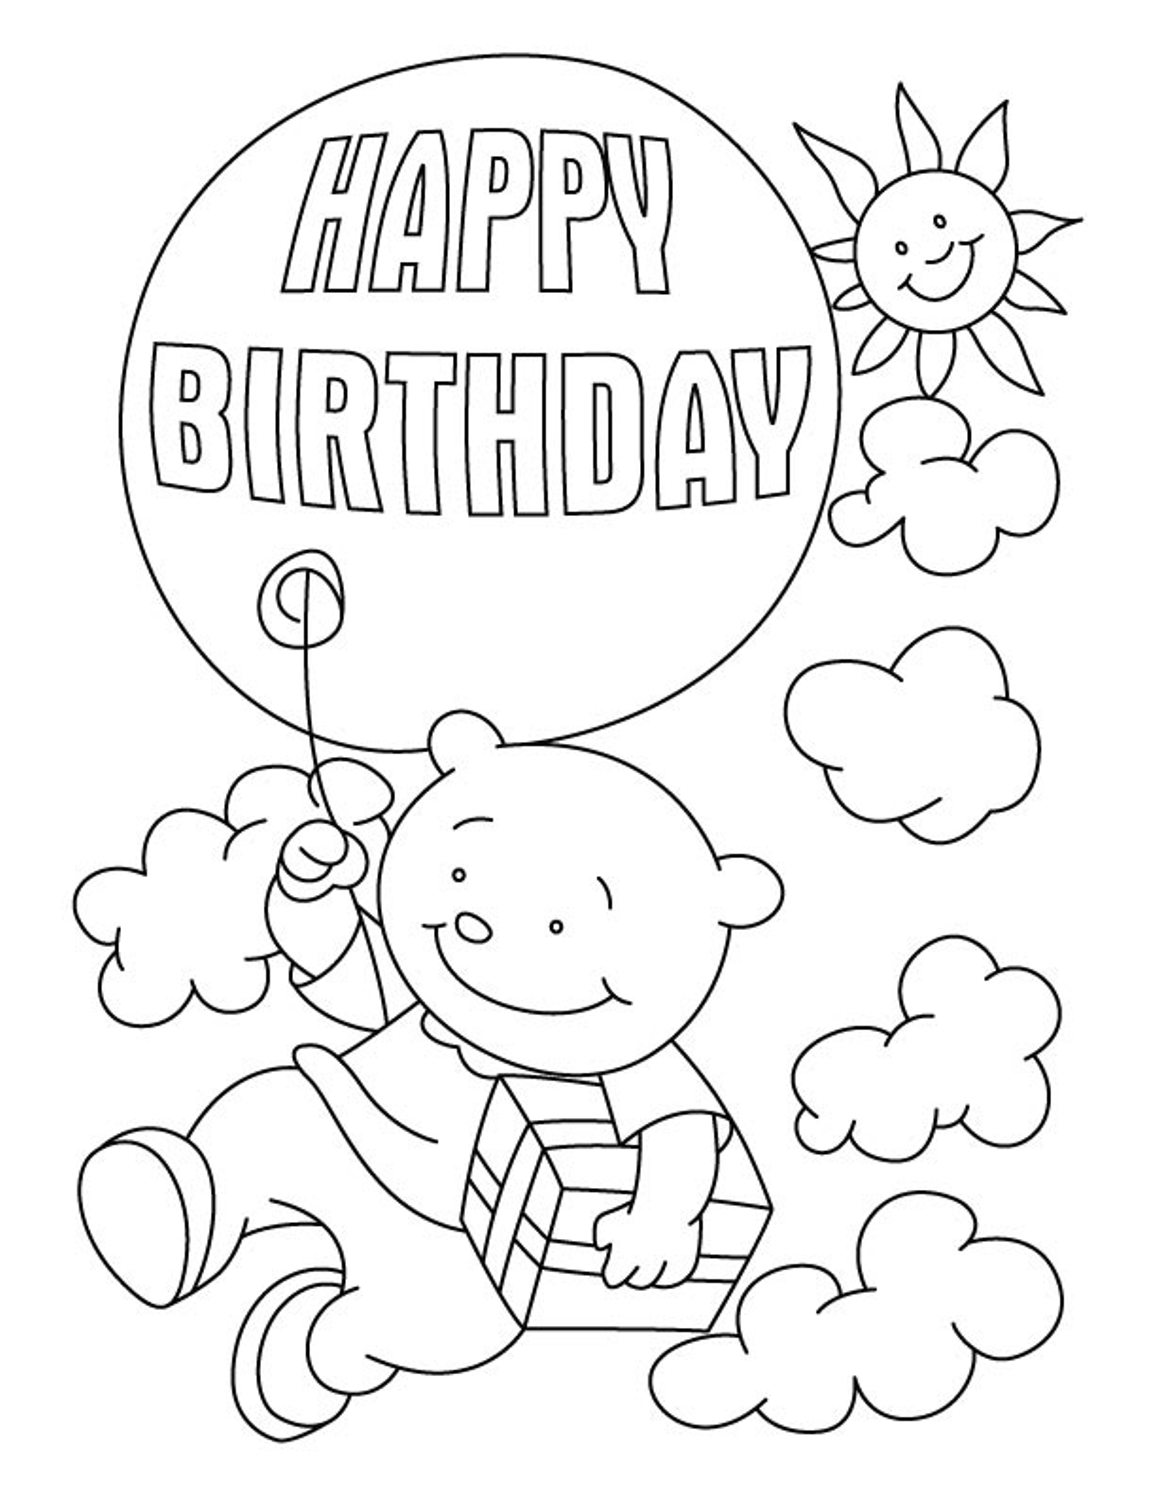 This is a graphic of Juicy Birthday Coloring Pages Free